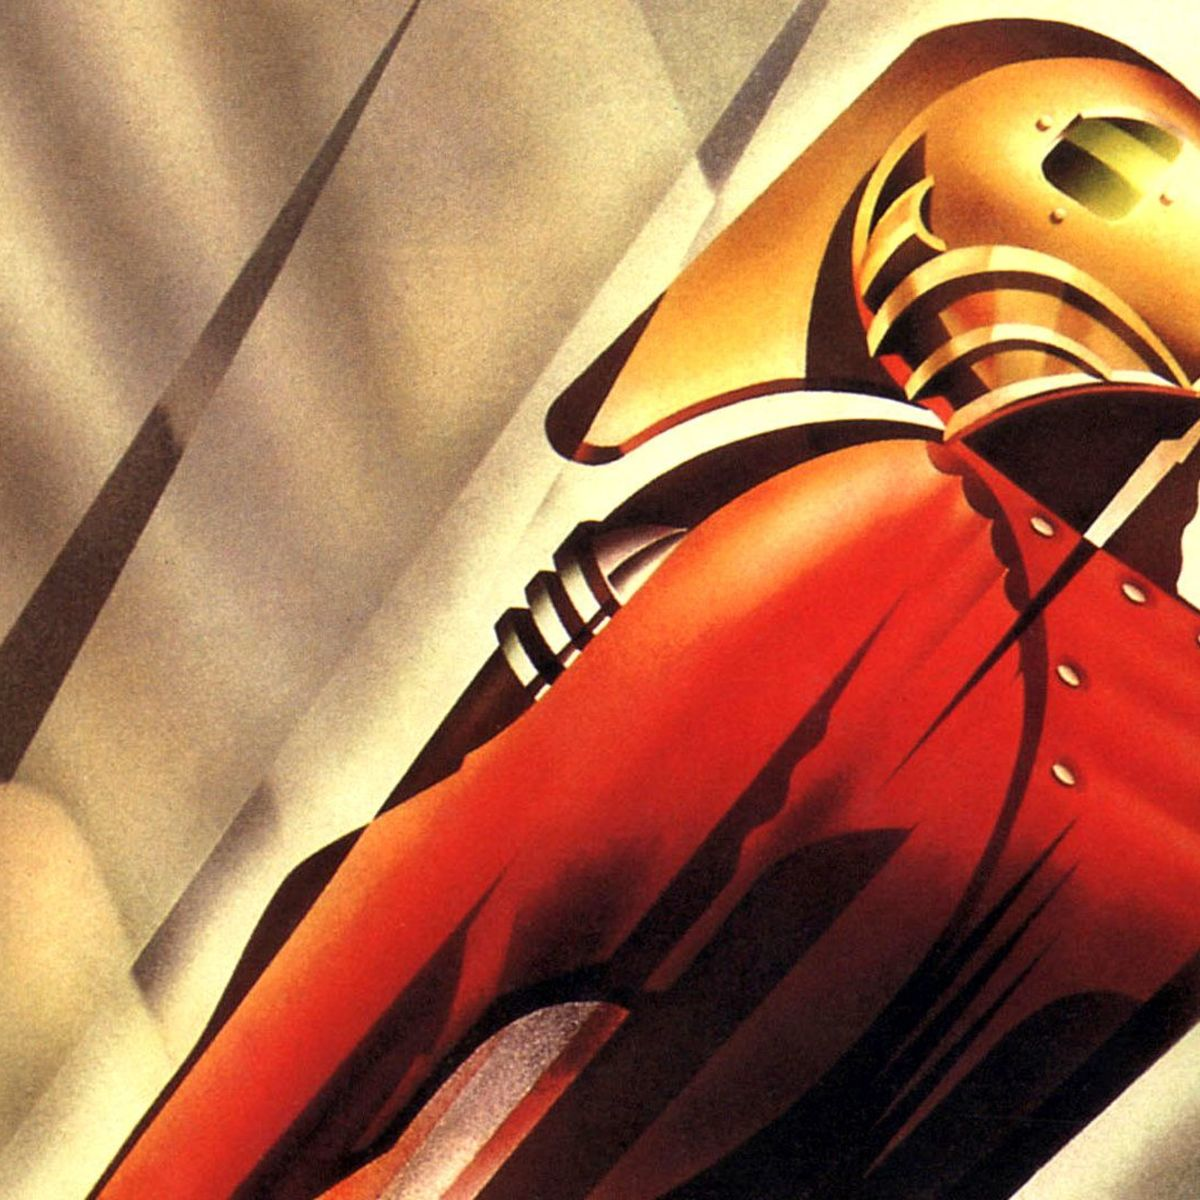 The-Rocketeer.jpg